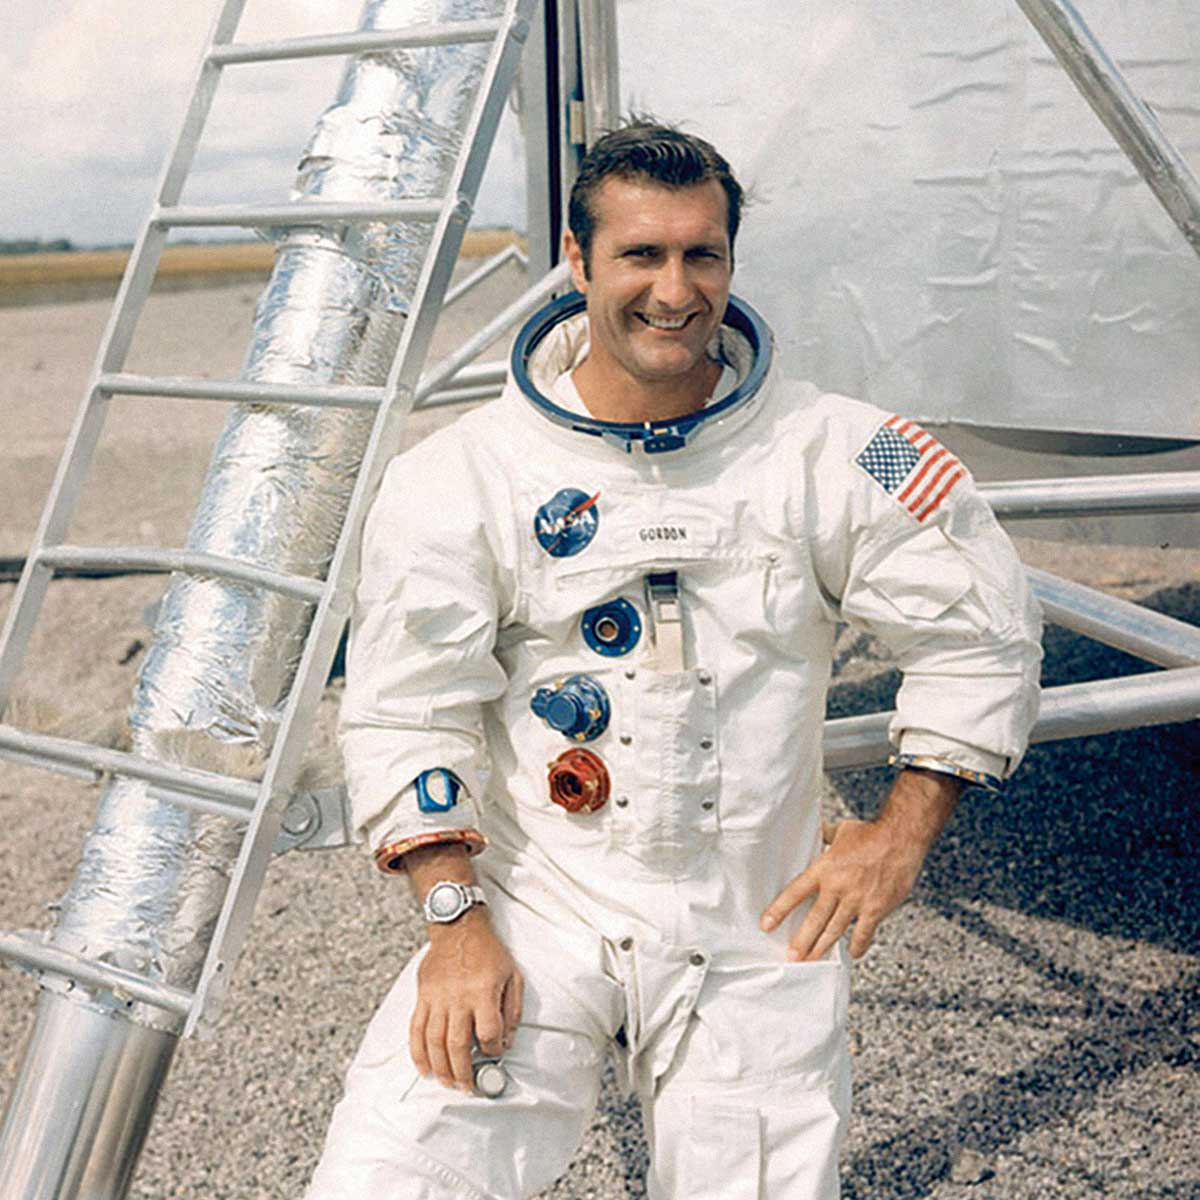 Gordon poses in front of a lunar module mock-up at Cape Canaveral (formerly Cape Kennedy) with his Speedy on a JB Champion strap with curved end pieces.